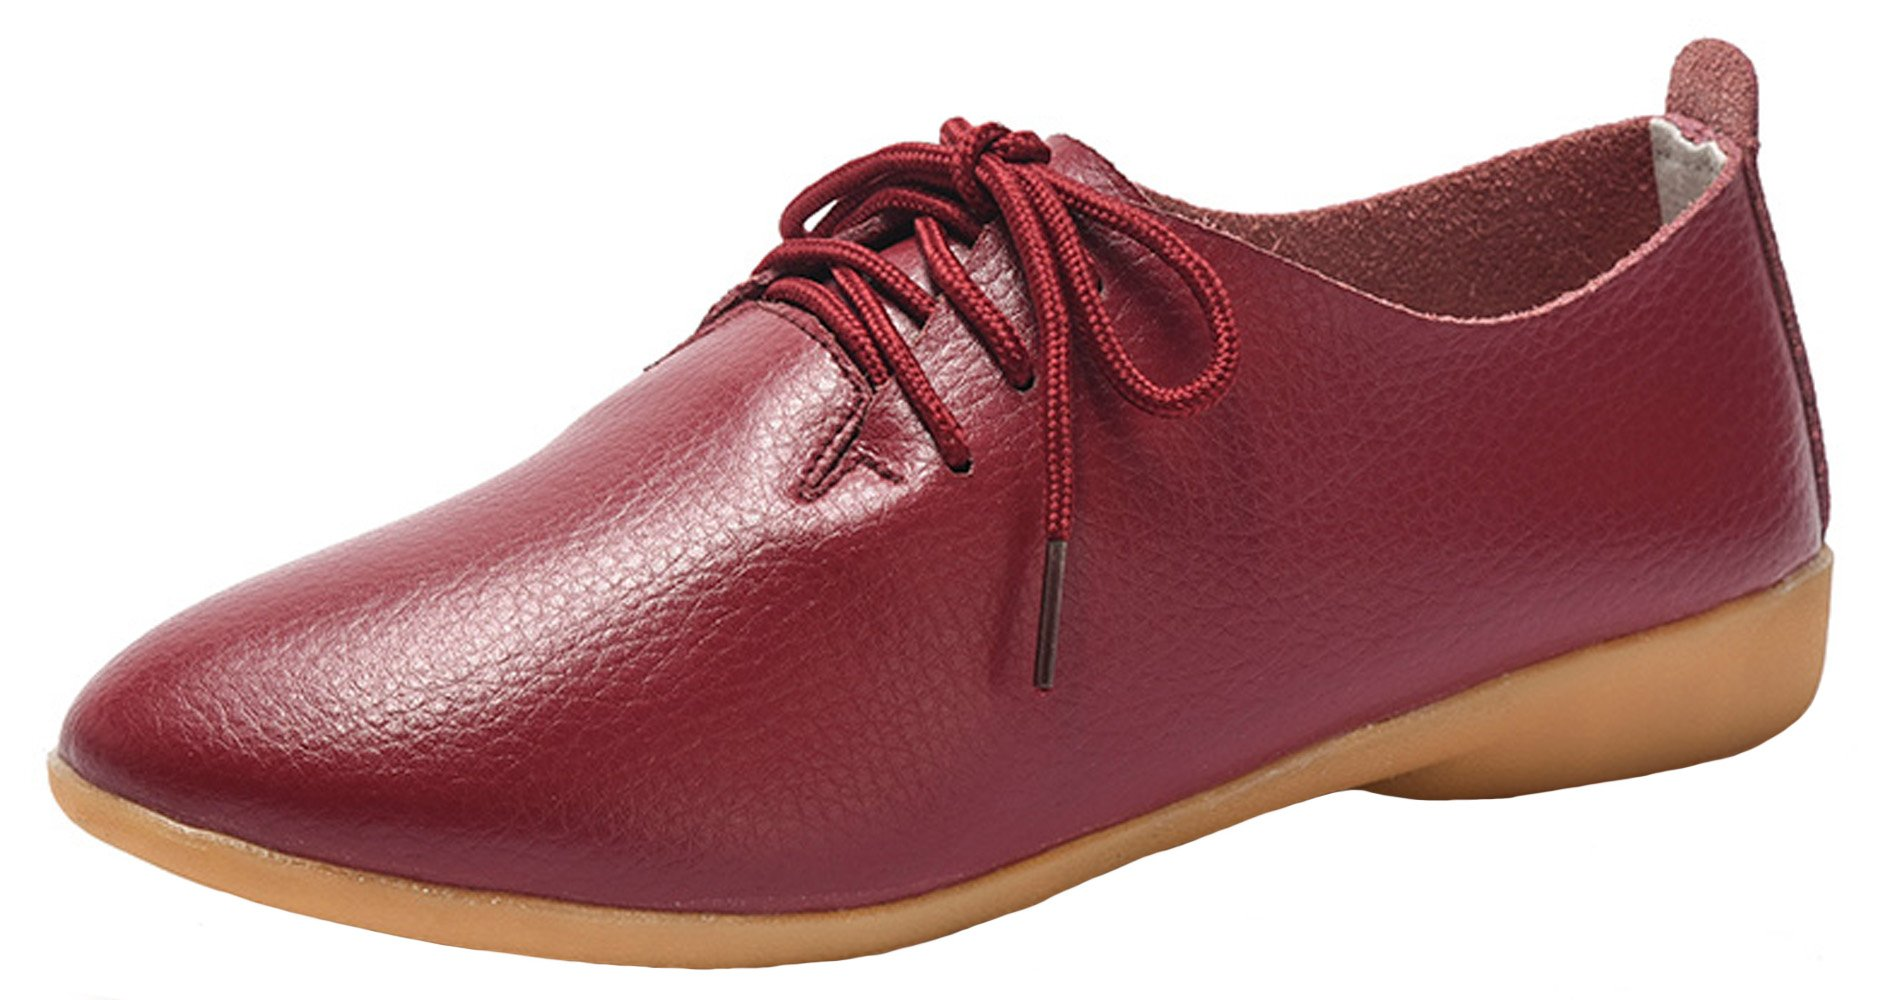 WUIWUIYU Women's Leather Lace-Up Oxfords Shoes Casual Comfort Walking Driving Flats